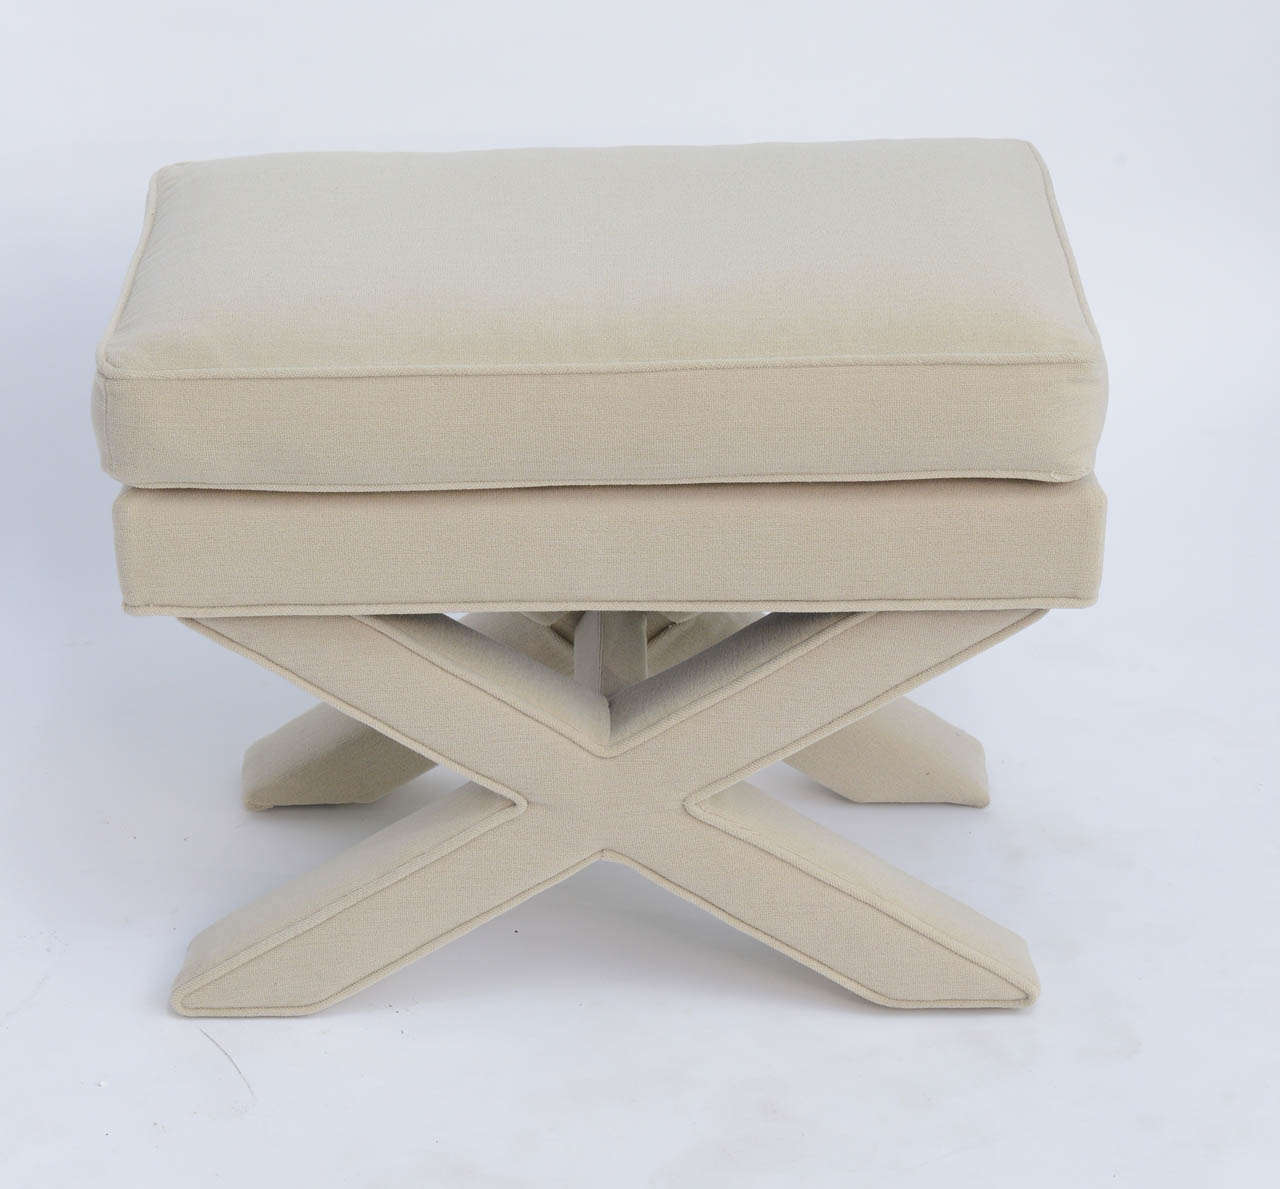 Sleek and urbane, this Billy Baldwin style bench in Classic X-form has a plush double tier seat. Newly upholstered in an off white vintage Knoll bouclé short loop fabric. A singular sensation! Measures:  26 inches  x  16 1/2 inches  x  20 inches